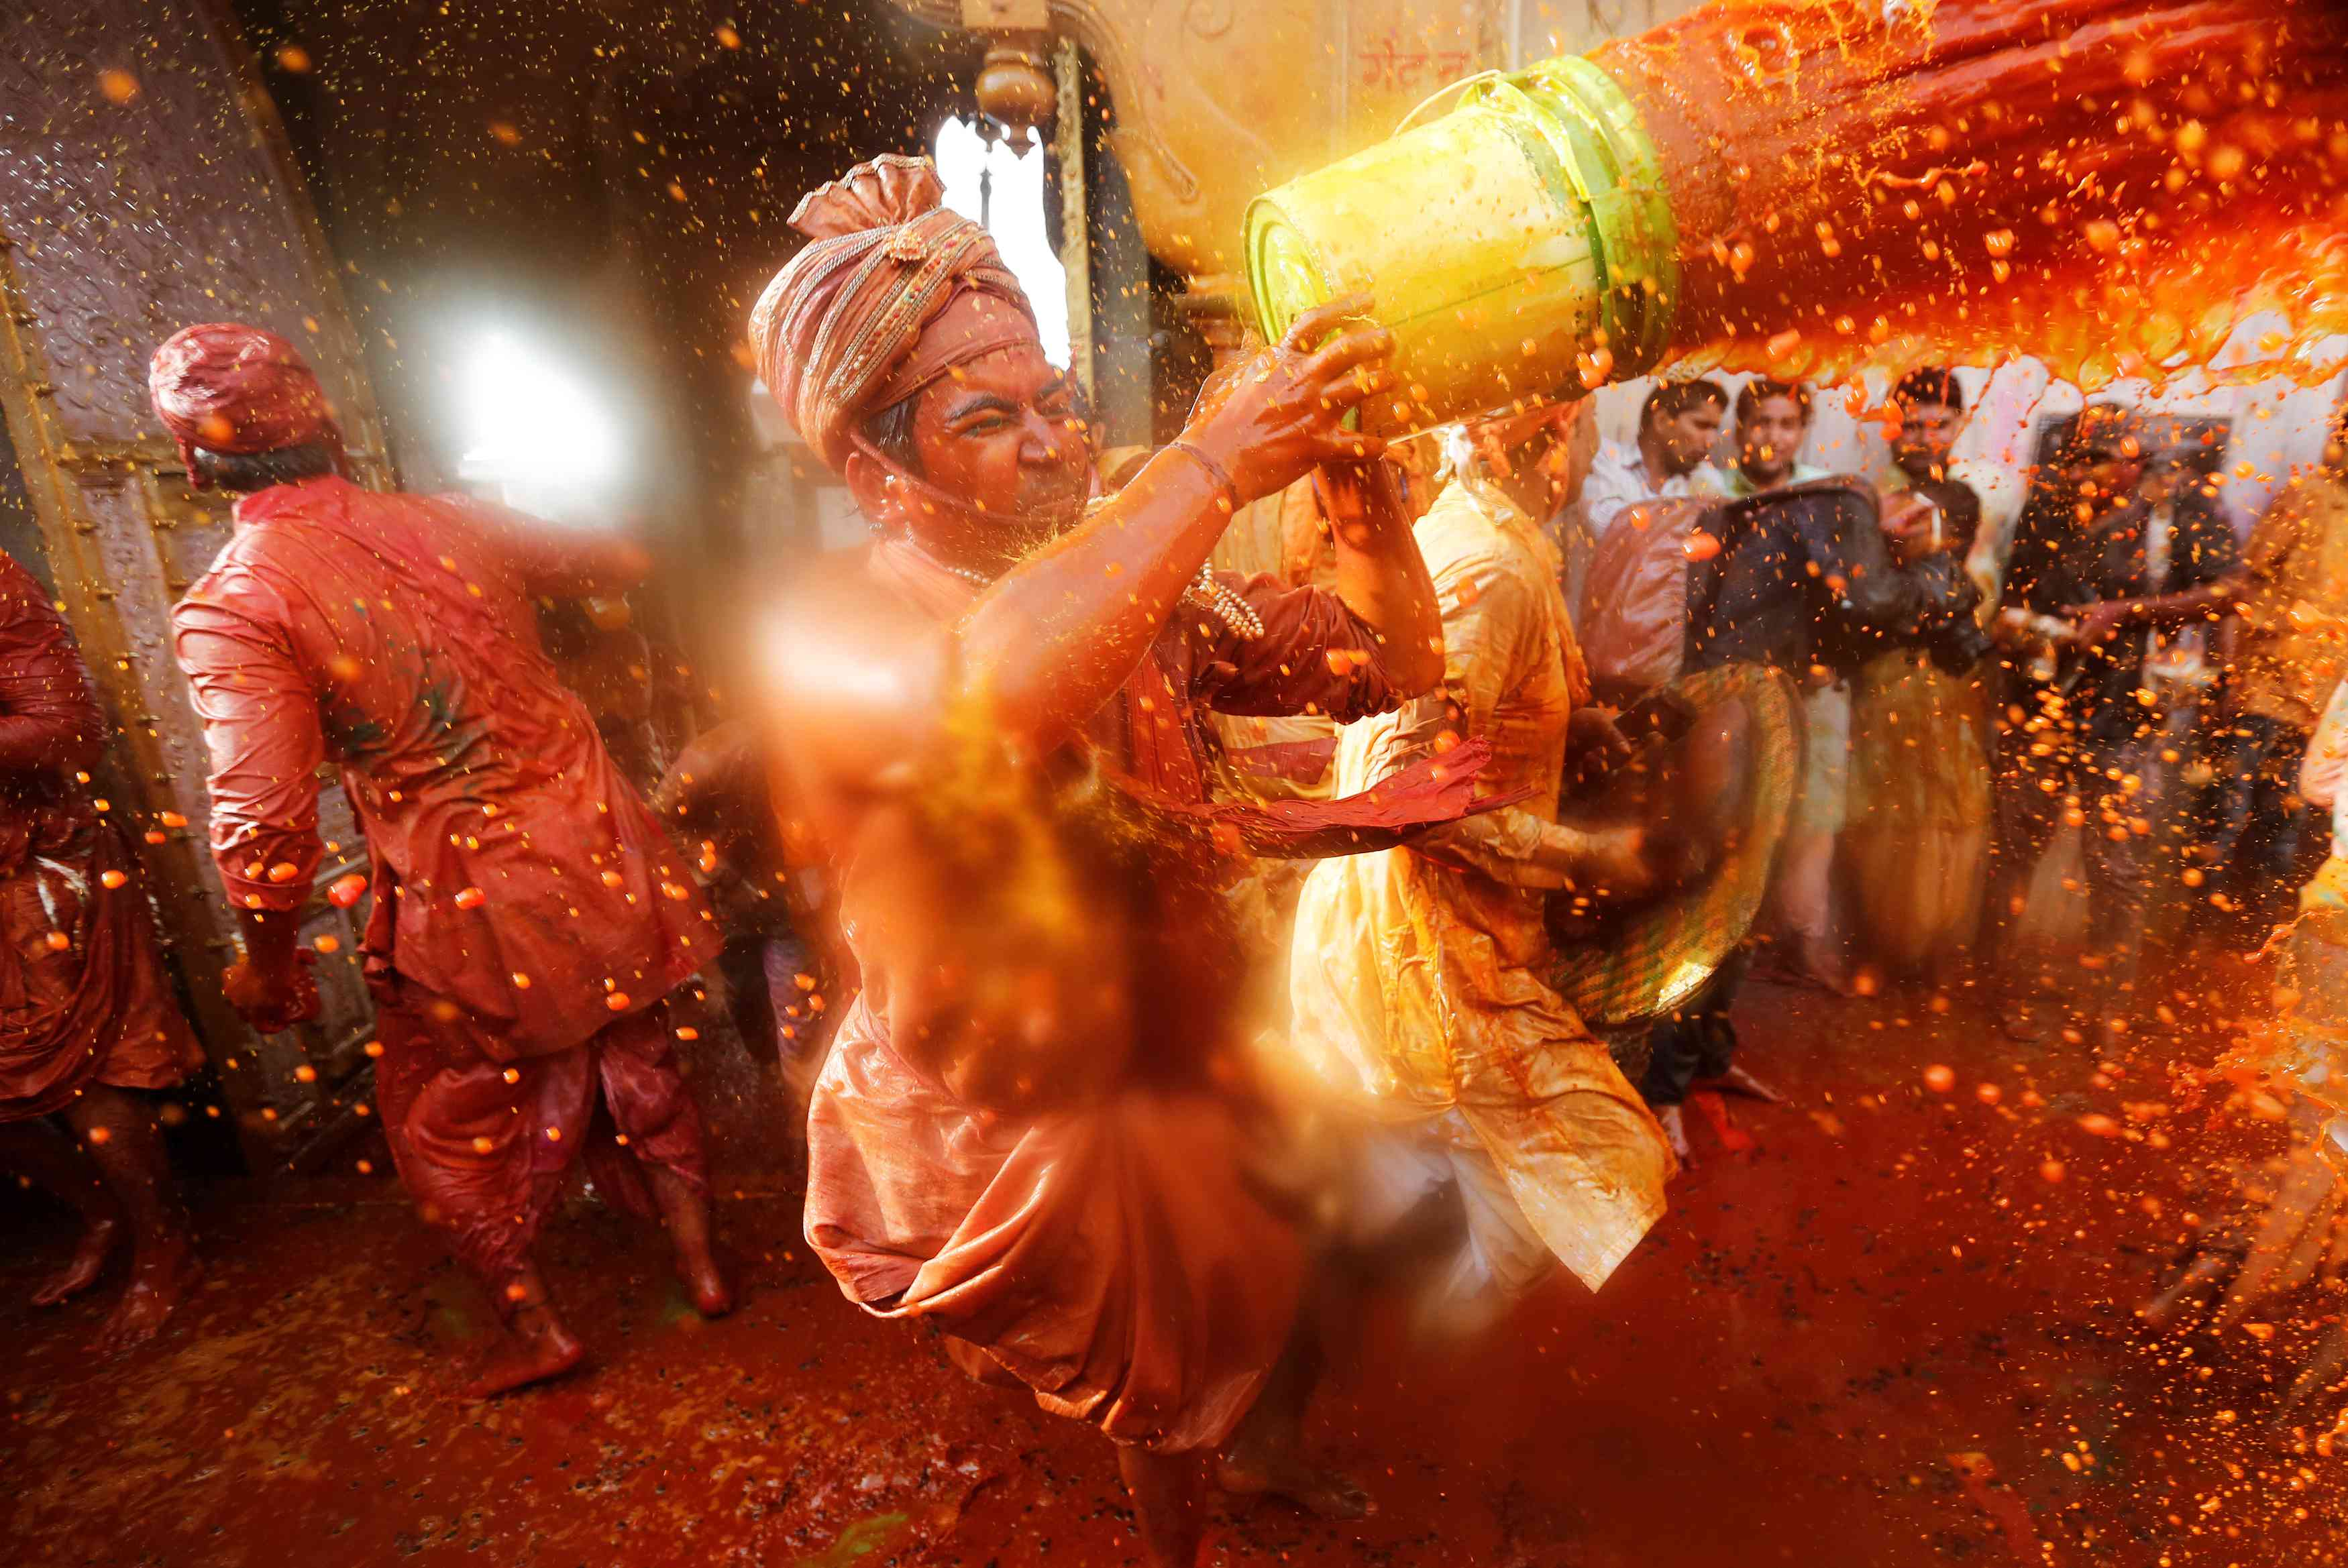 Devotees take part in Holi celebrations inside a temple in Nandgaon village of Uttar Pradesh. | Credit: Reuters